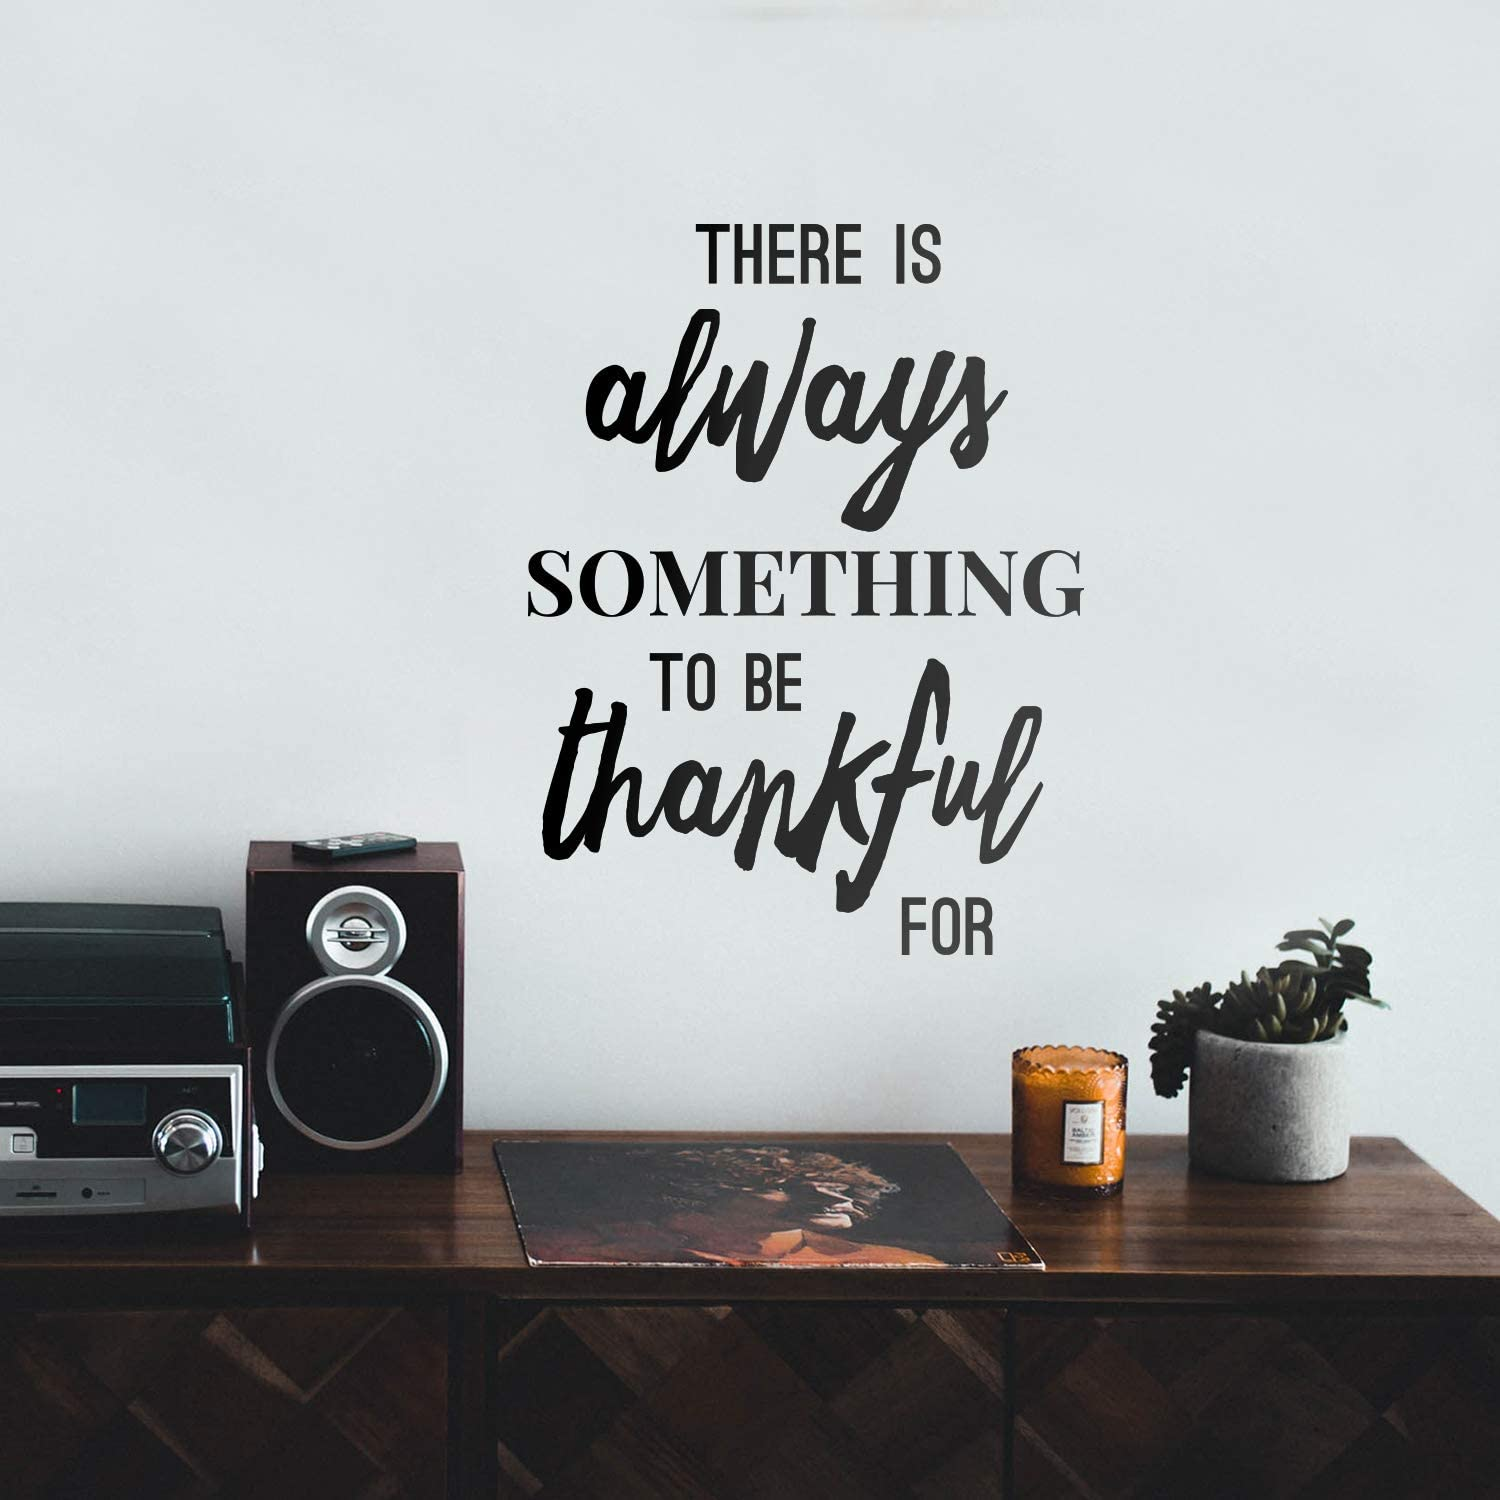 "Vinyl Wall Art Decal - There is Always Something to Be Thankful for - 22.5"" x 17"" - Inspirational Life Quote for Home Dining Room Living Room - Modern Office Workplace Bedroom Decor"